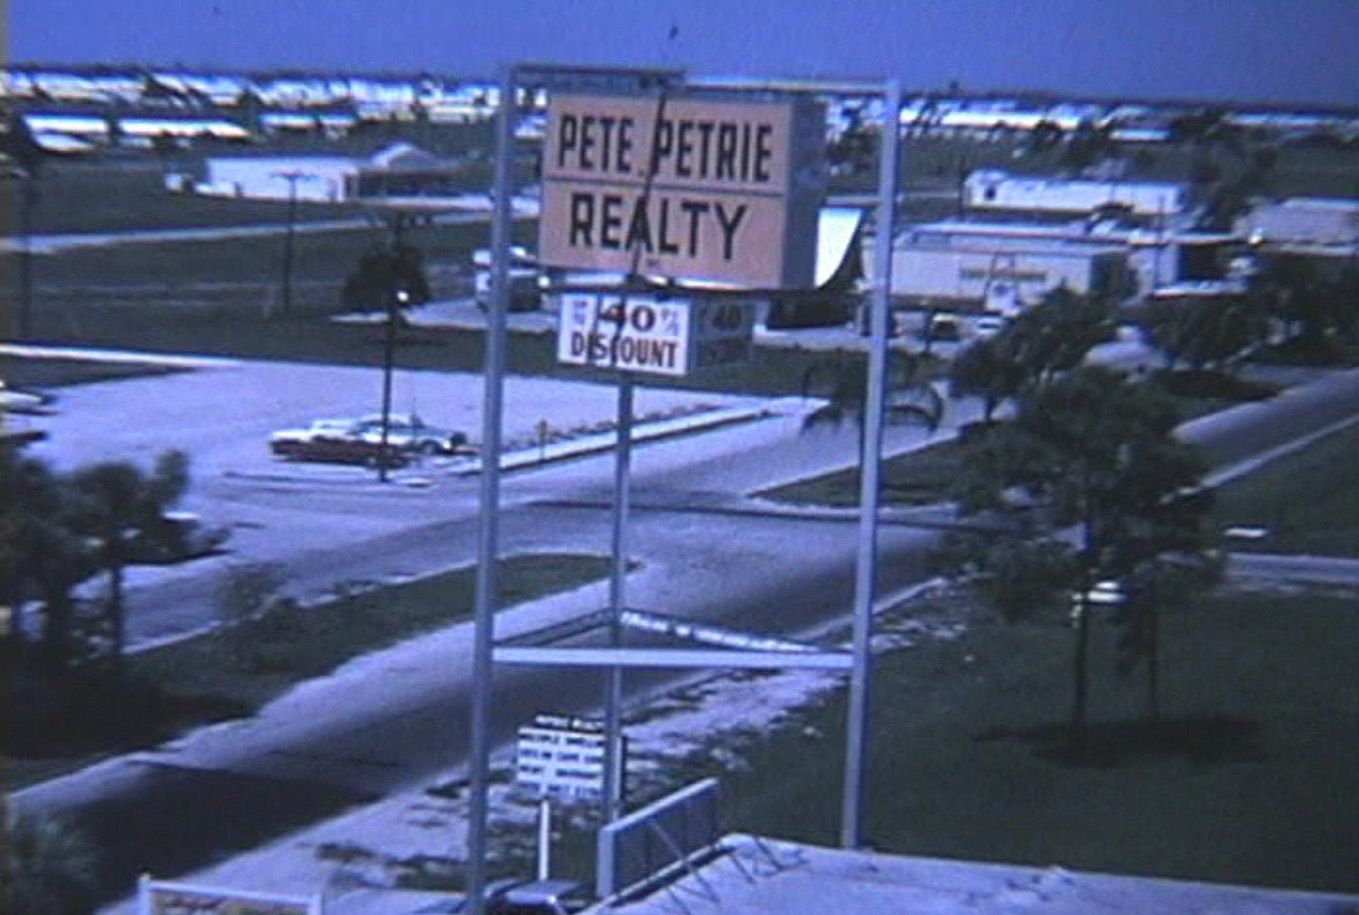 Pete Petrie Realty in Cape Coral 1960. Pete used to wait at the bus stop in town to solicit the new visitors coming to view lots and homes. The visitors were flown in from Travel Guild of America who had to chaperone their visitors so Petrie wouldn't be able to get a hold of them. Marketing 101